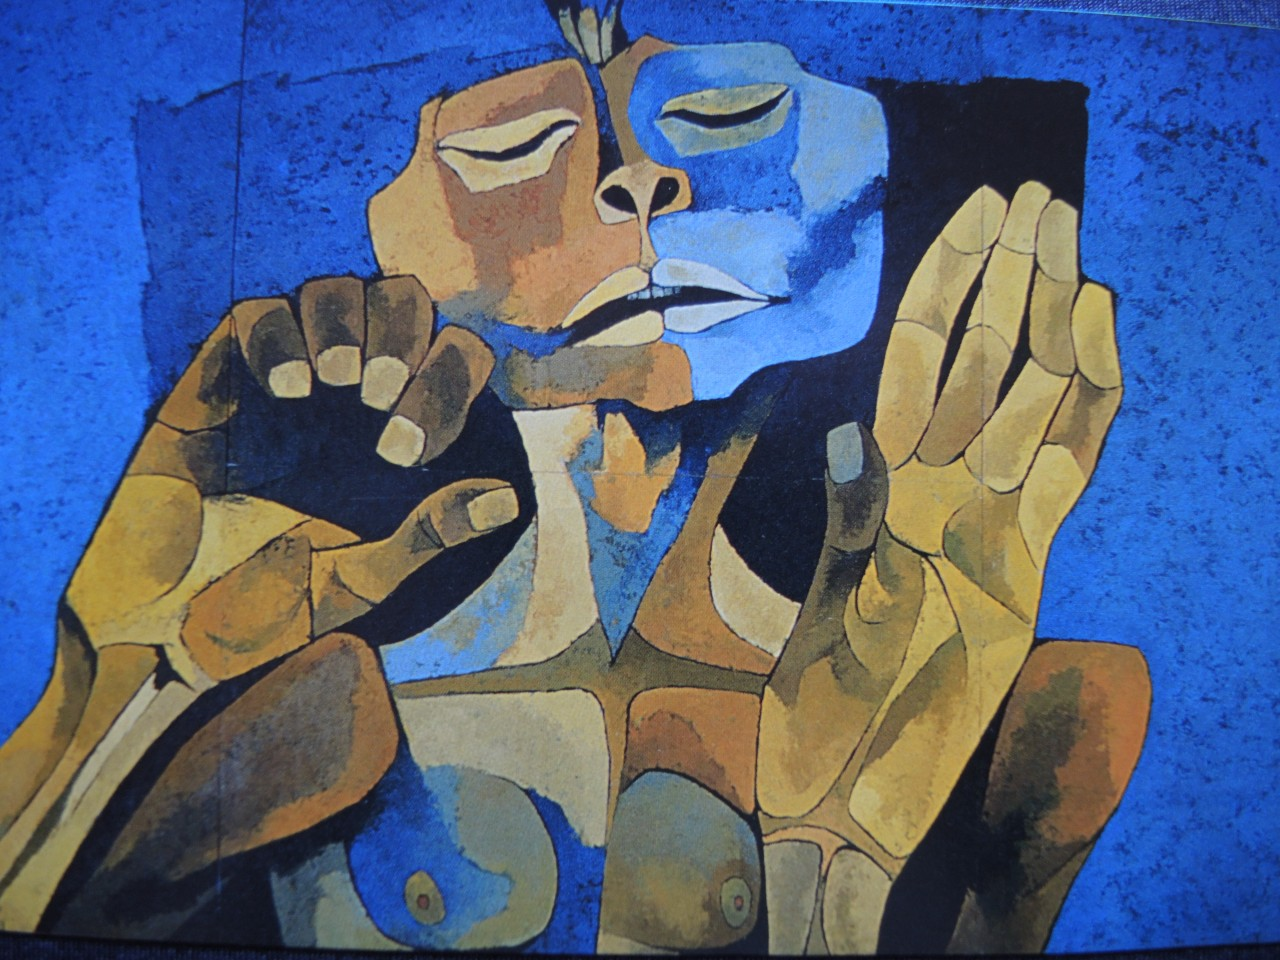 Video: Art of Oswaldo Guayasamin